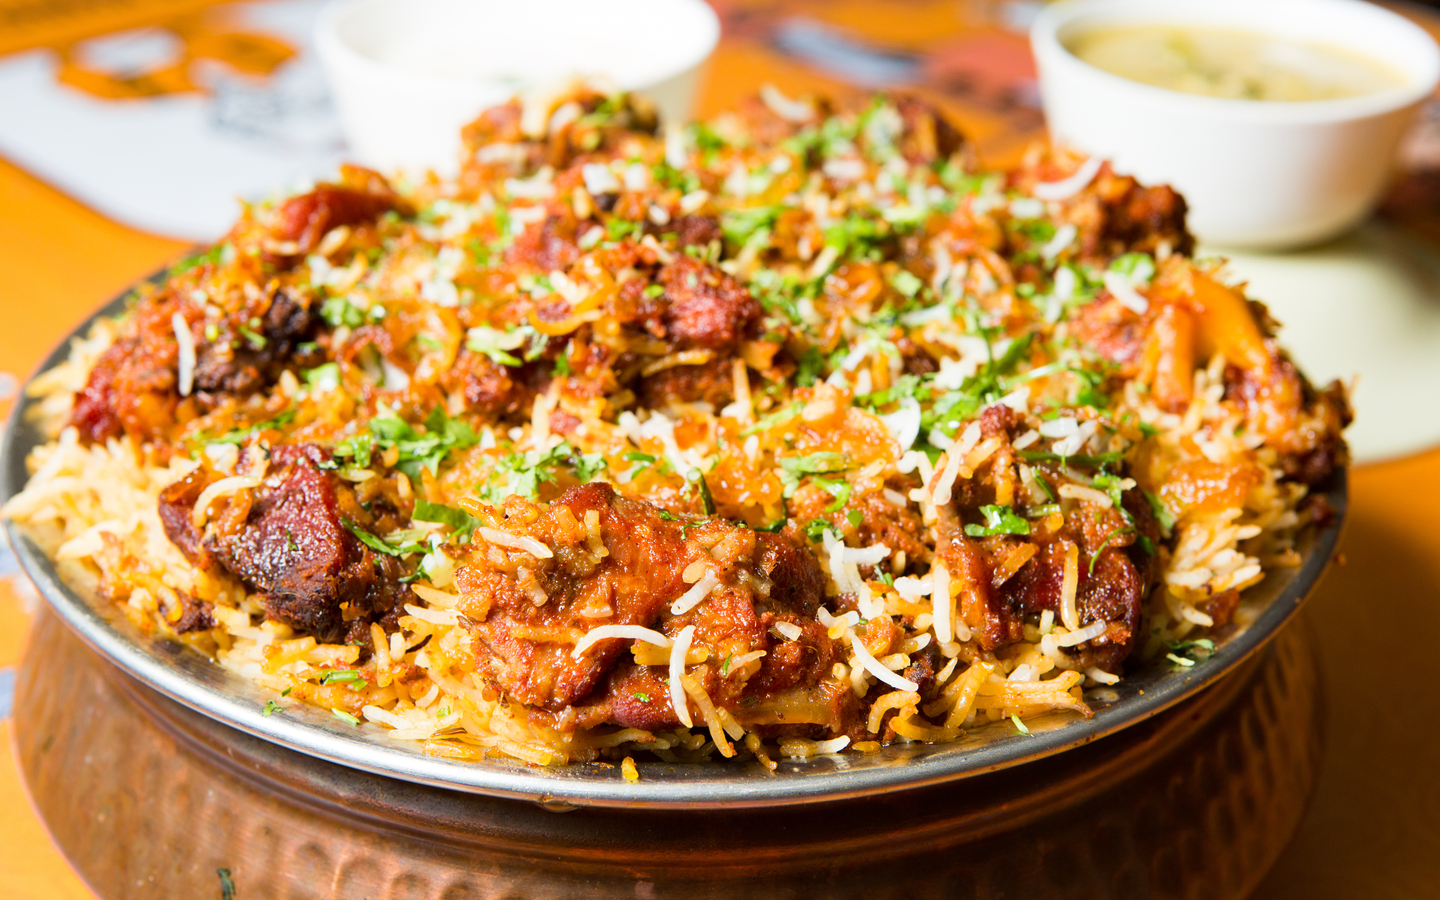 You can try variety of Biryani's at some of the best Pakistani restaurants in Dubai